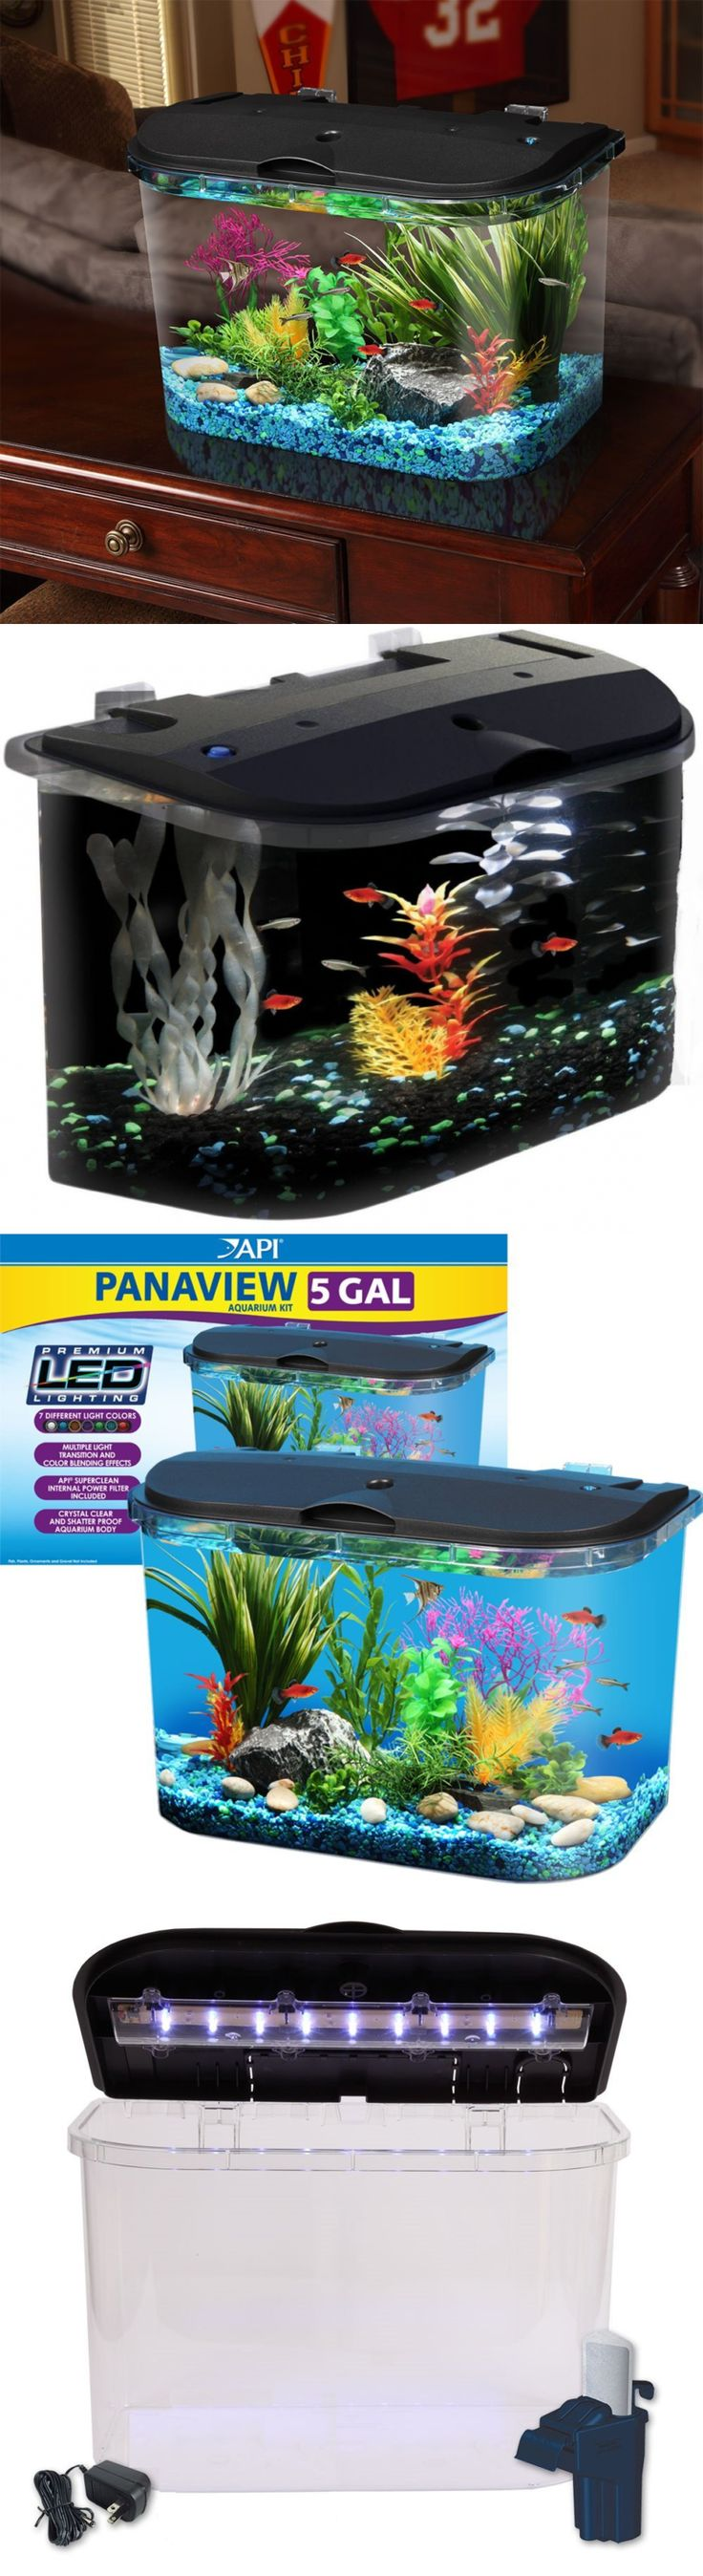 Best 25 big fish tanks ideas only on pinterest amazing for Buy fish tank